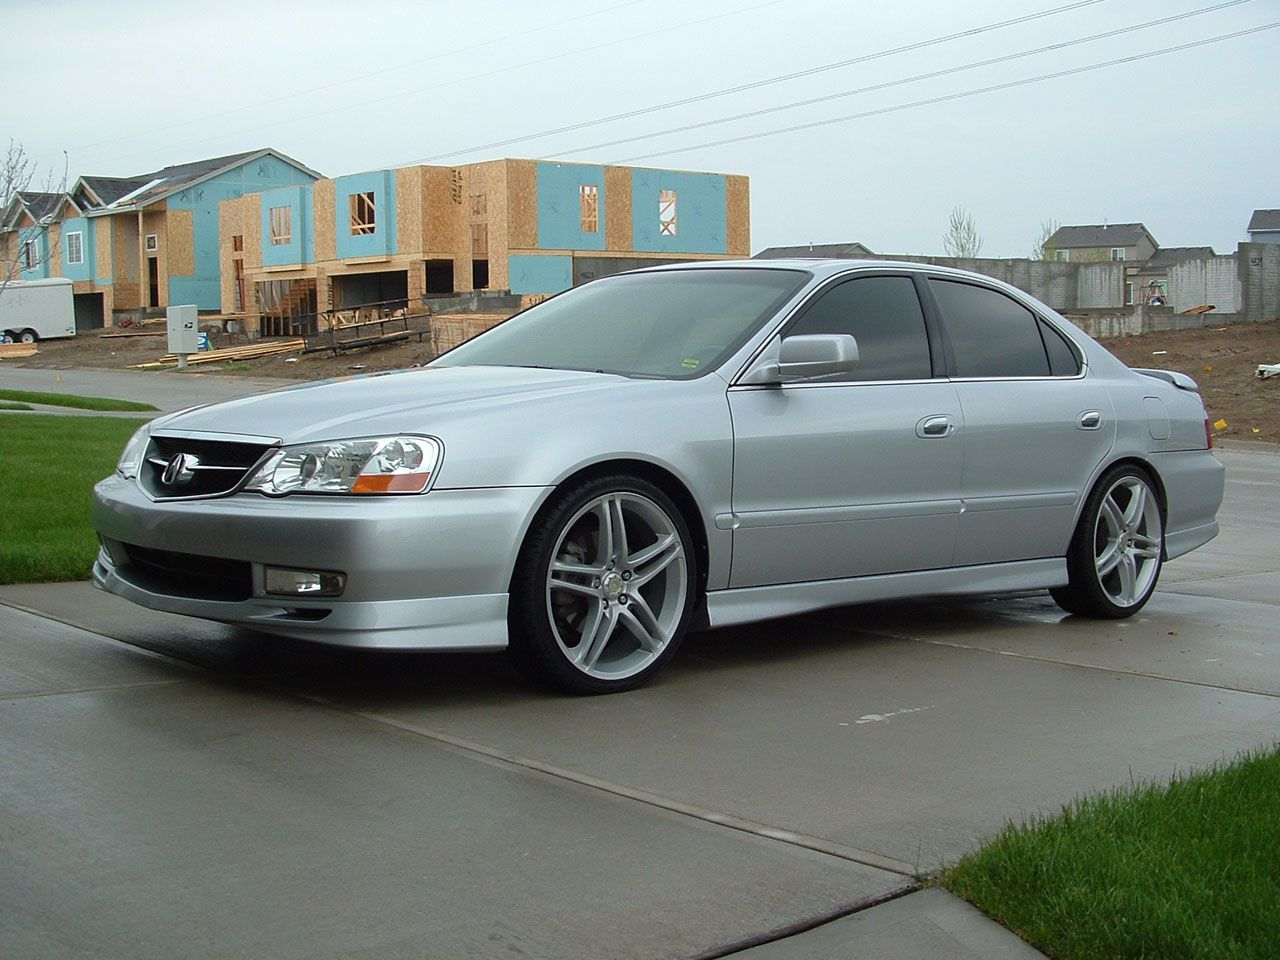 Custom Acura With Wheels Tls FS SSM Acura TLS - Acura tl type s wheels for sale